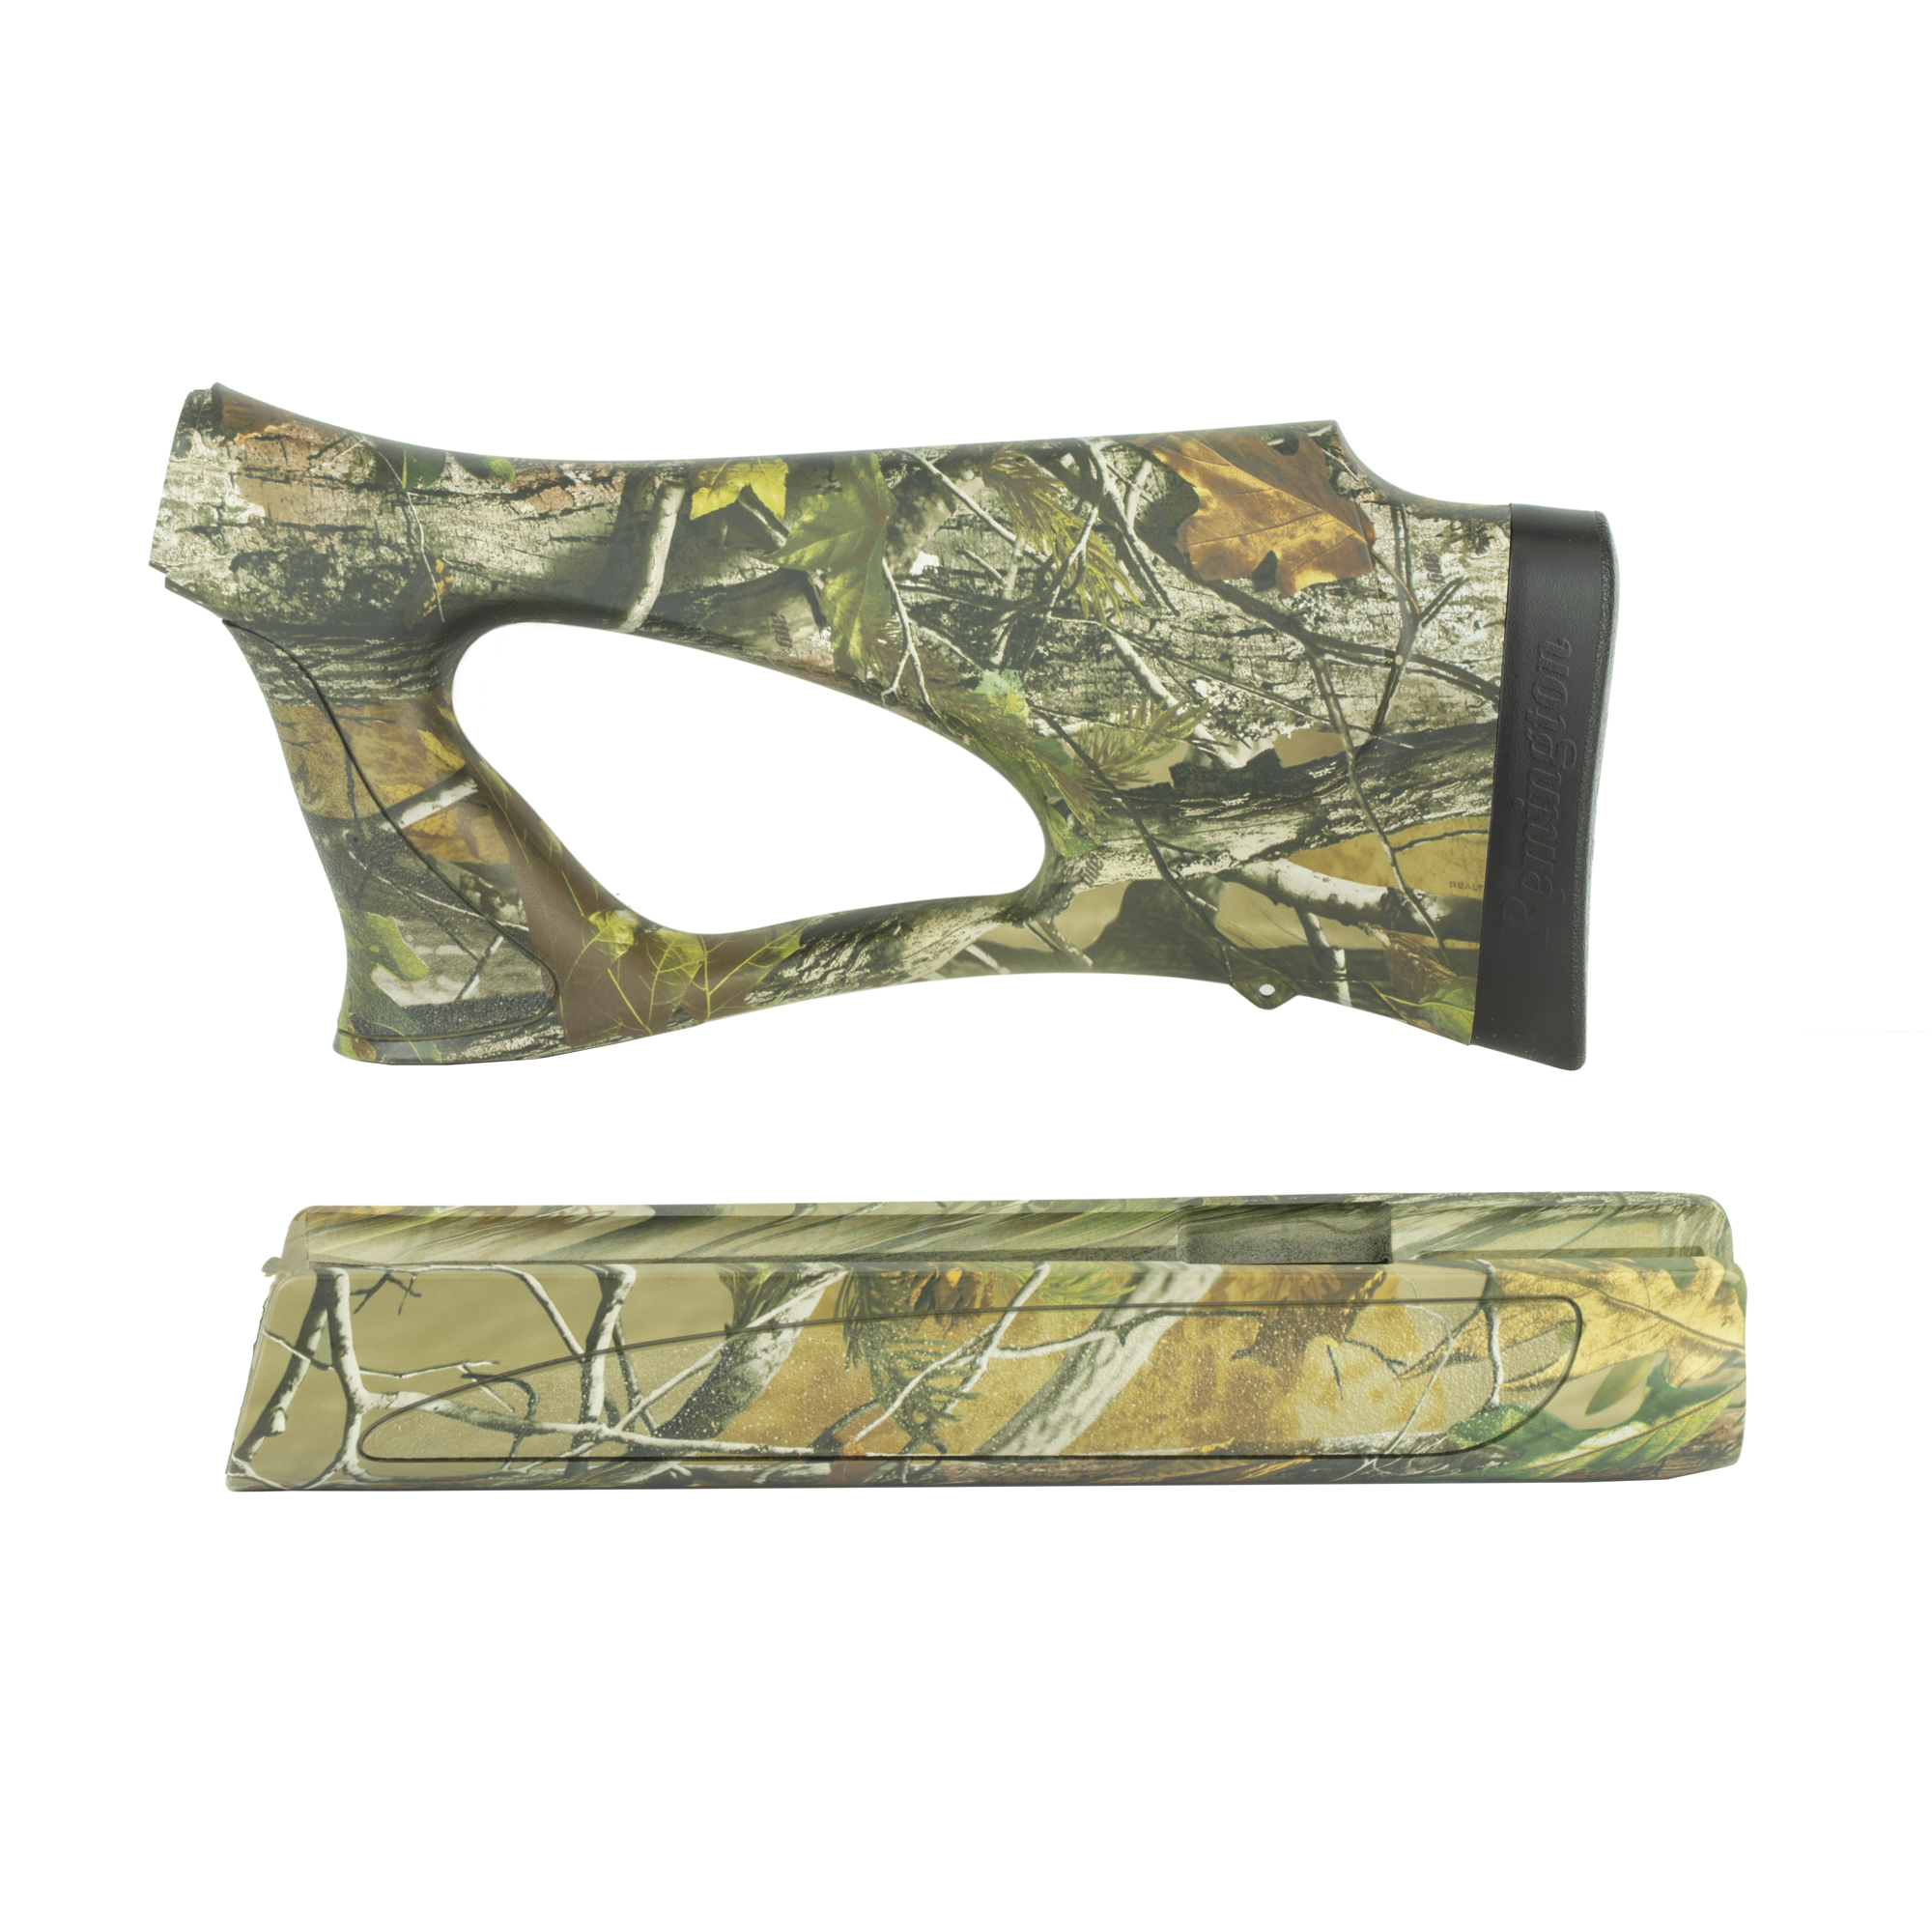 Remington Stock Realtree Hardwood Green Camo M1187 19550 for